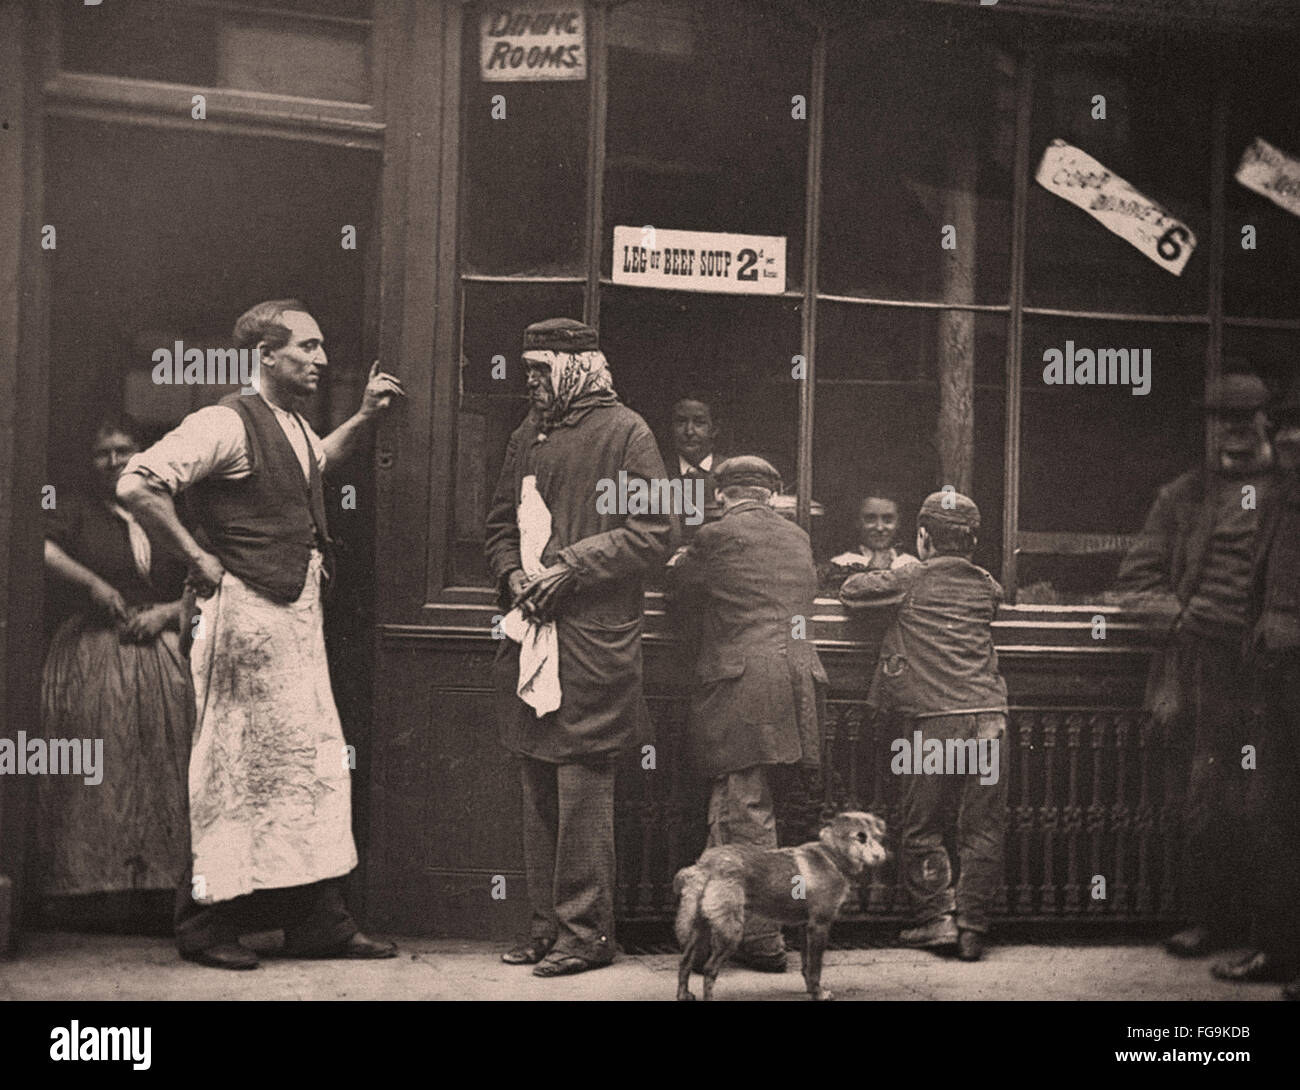 Street Life in London from the Victorian Era - Soup - Stock Image